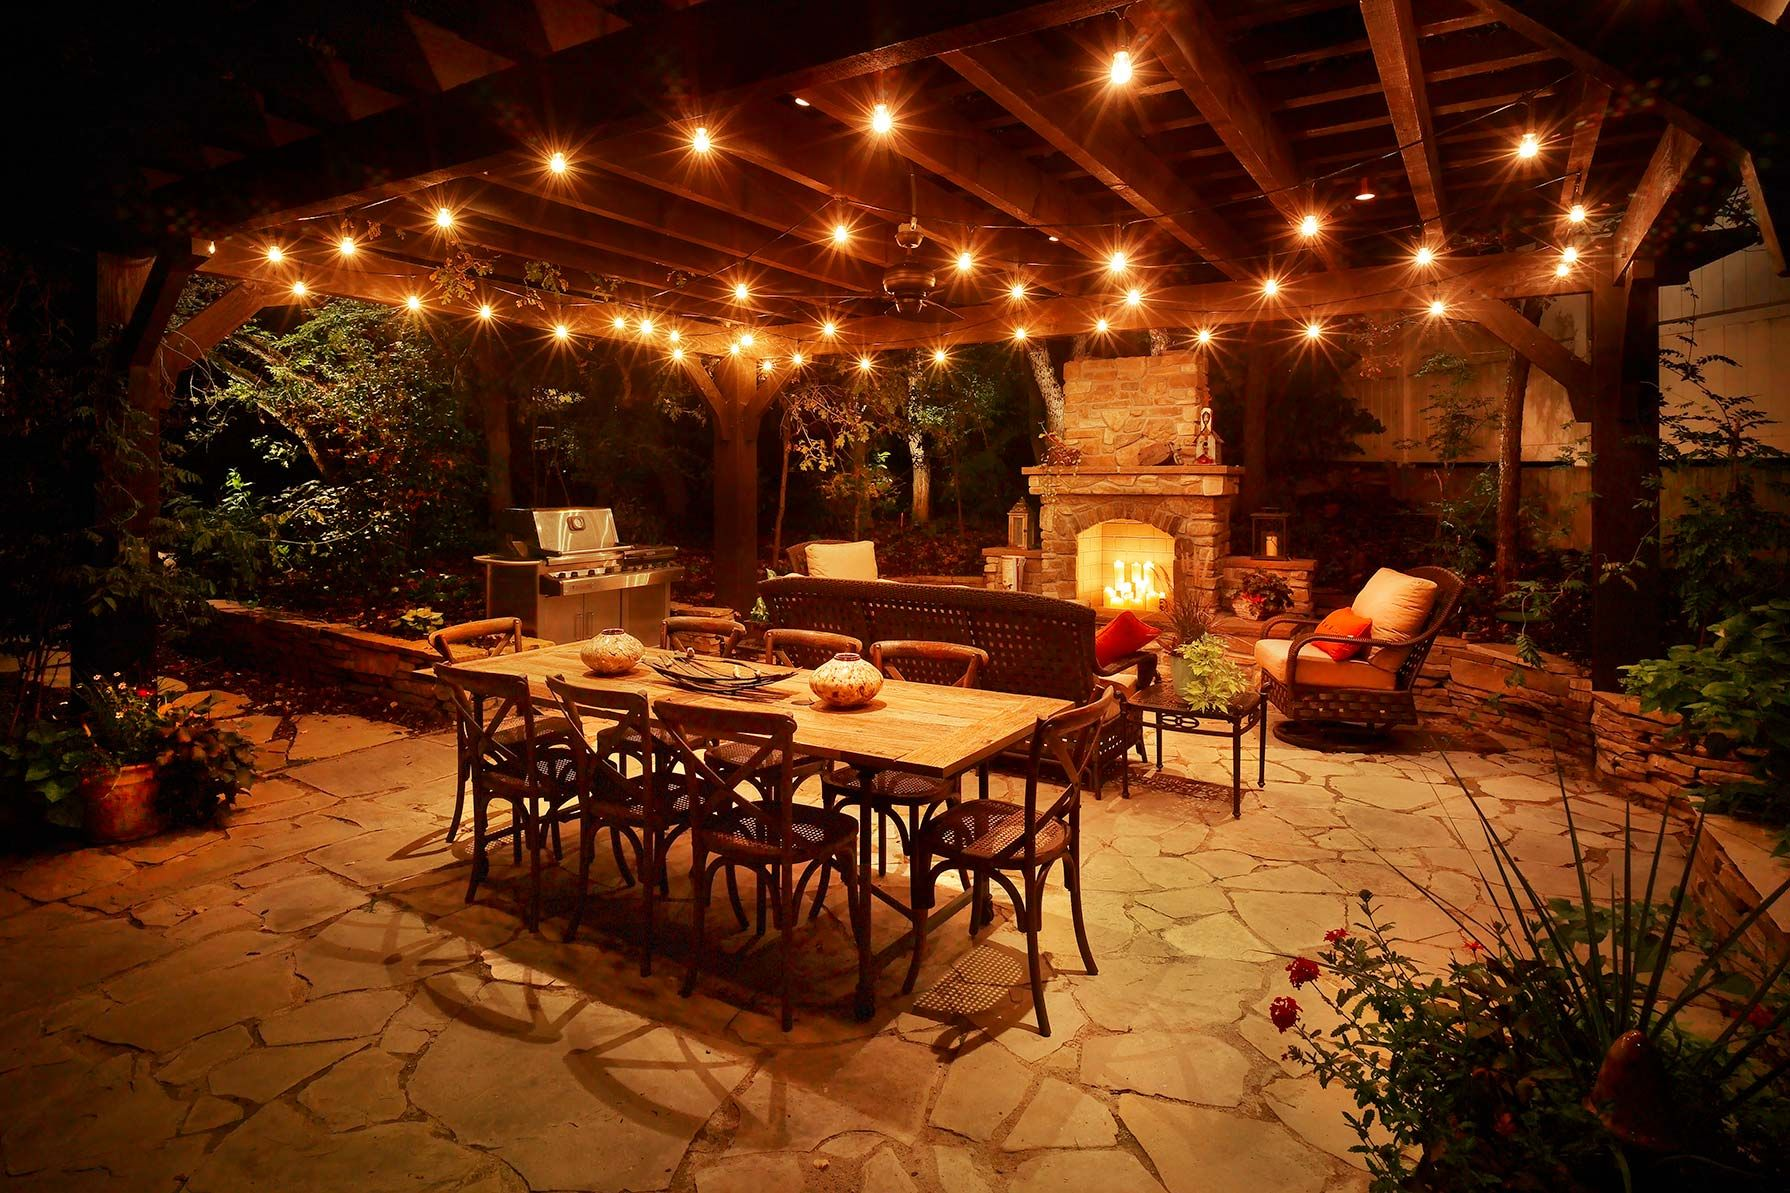 outside patio lighting ideas. gardening outdoor lights for patio pergola and kitchen lighting draper utah outside ideas c